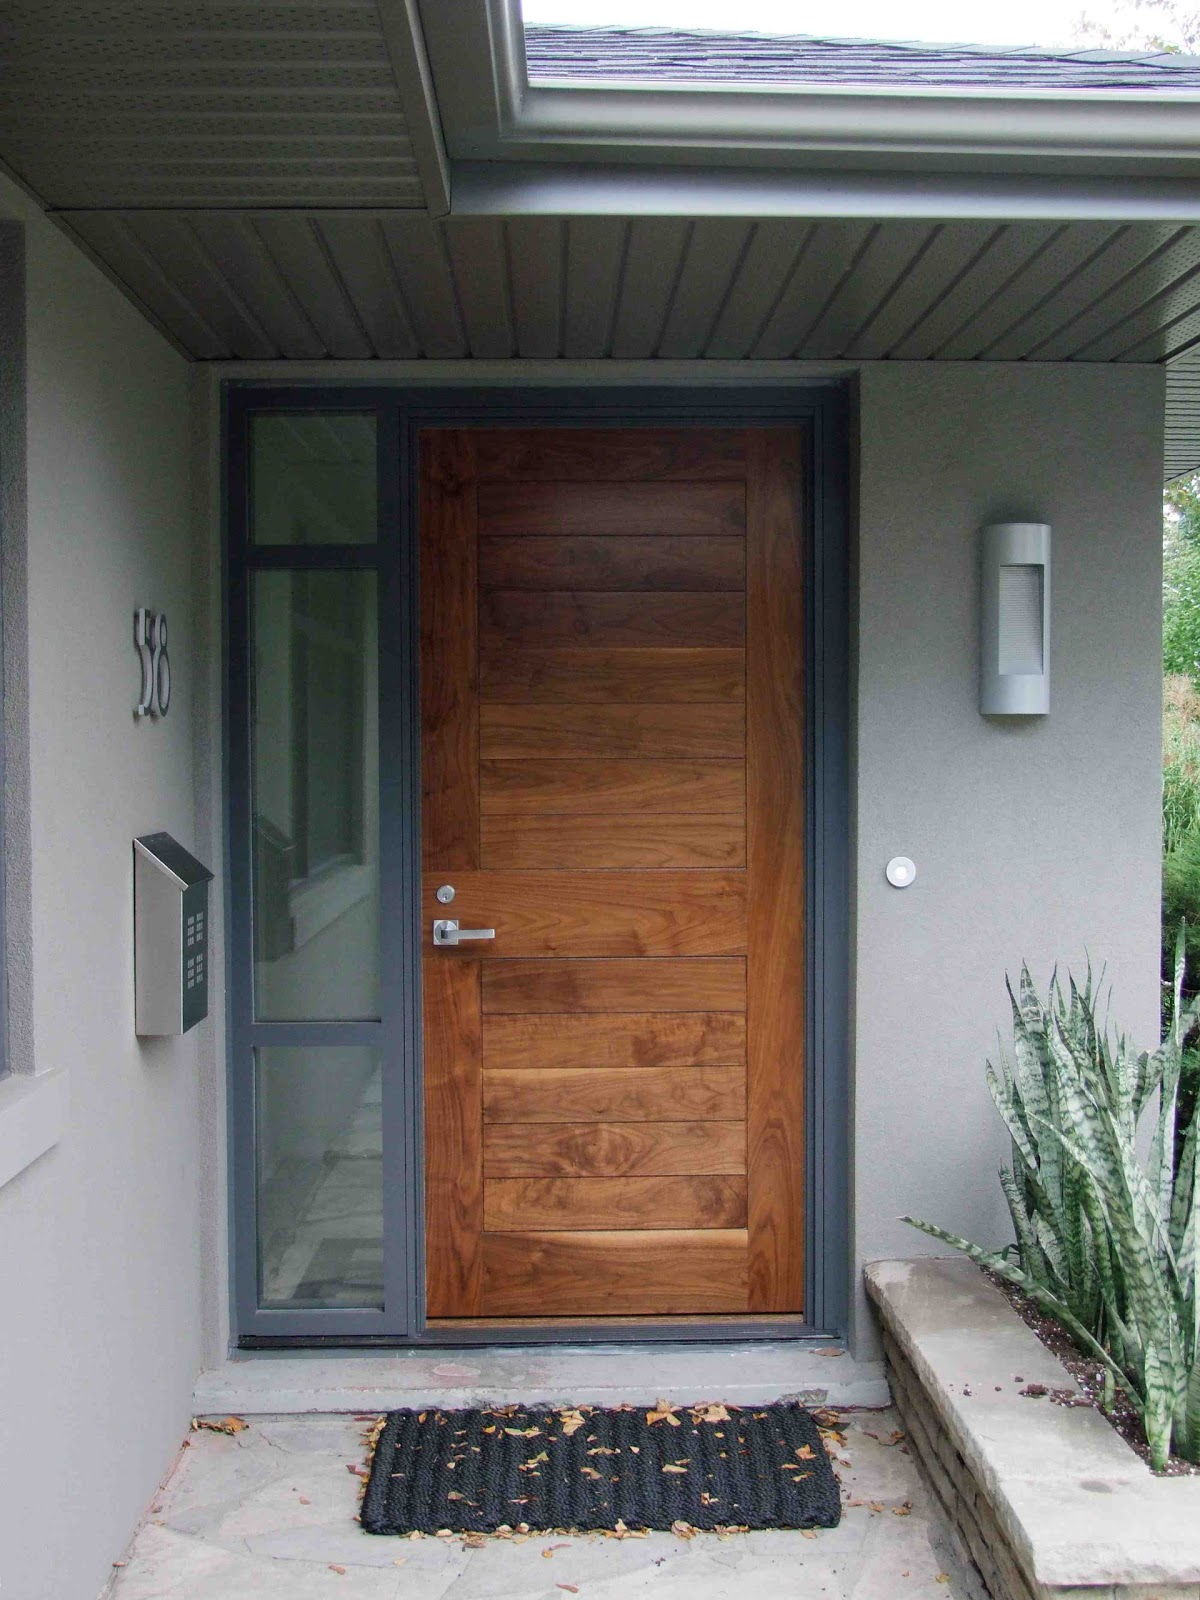 Creed 70 39 s bungalow makes a modern impression for Exterior front entry doors